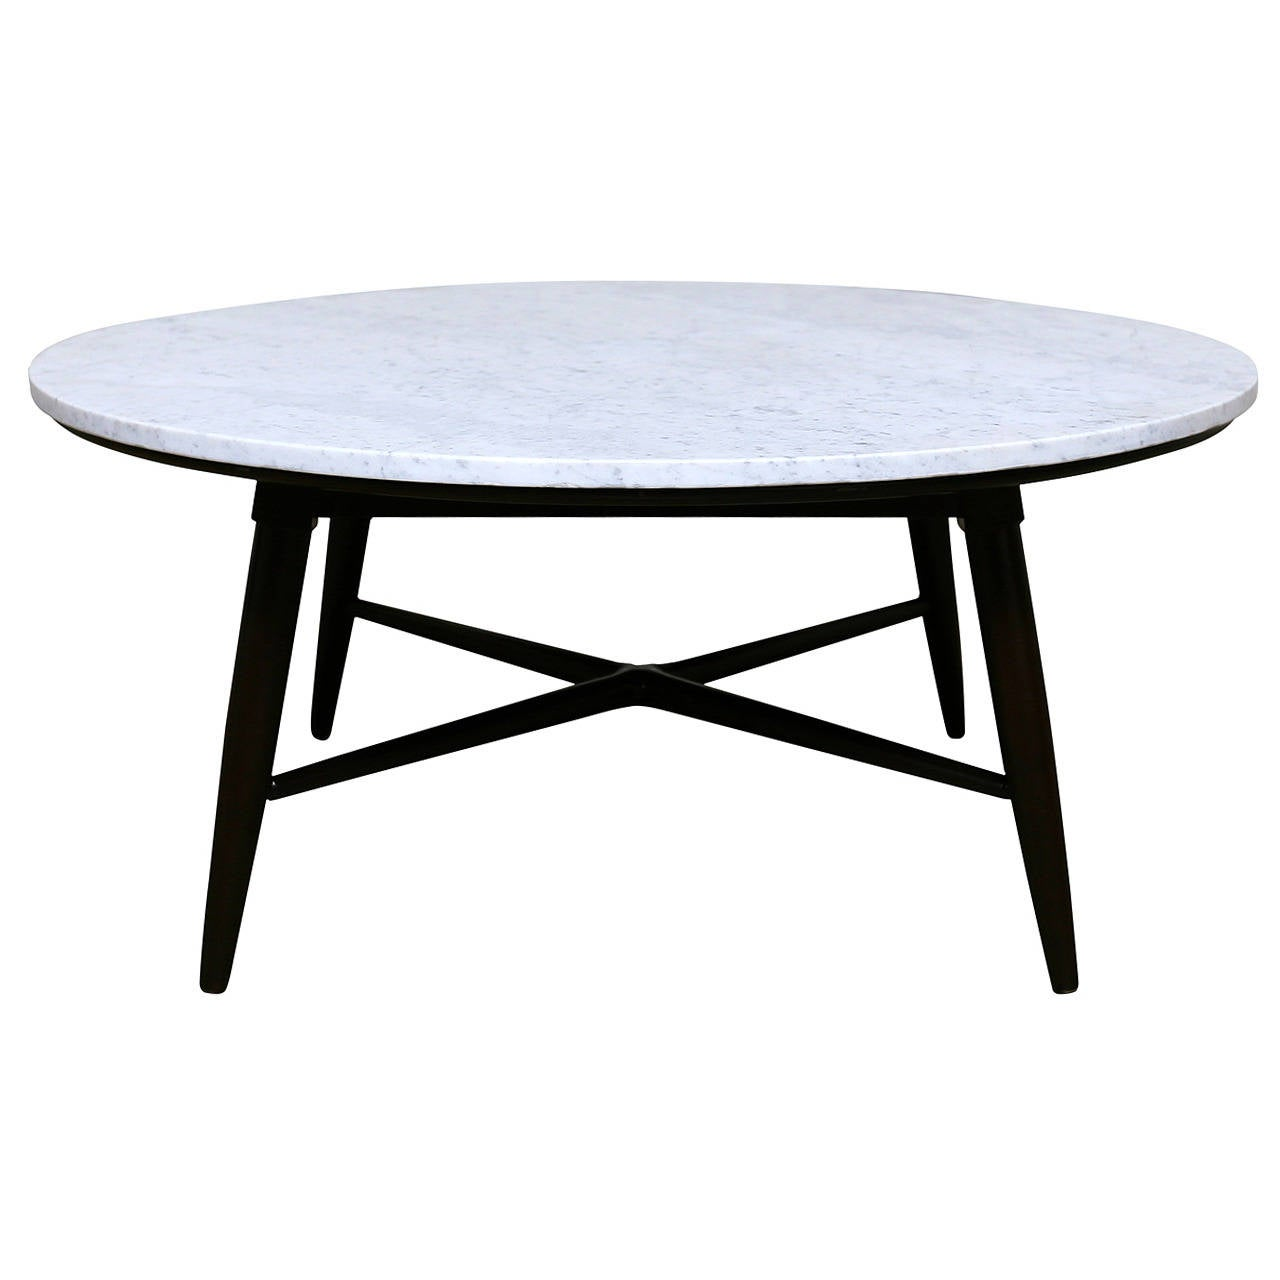 Round marble x base coffee table at 1stdibs for X coffee tables